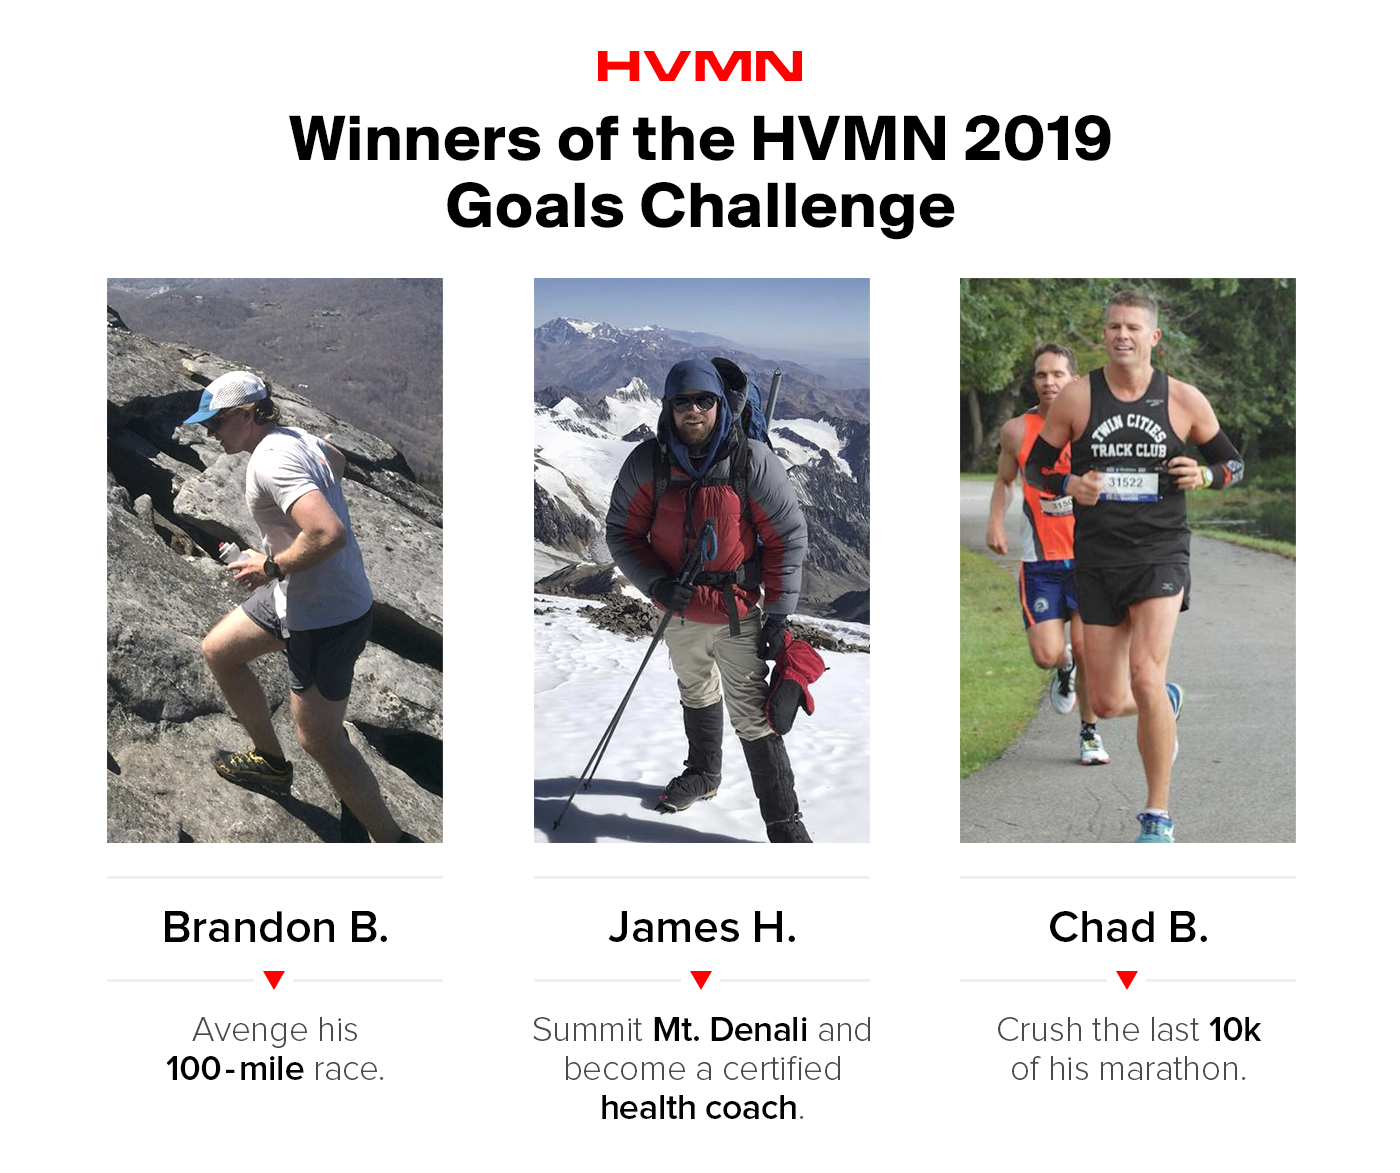 Winners of the HVMN 2019 Goal's Challenge. Brandon B is hiking, James H is climbing a mountain in snow gear, and Chad B is running a marathon